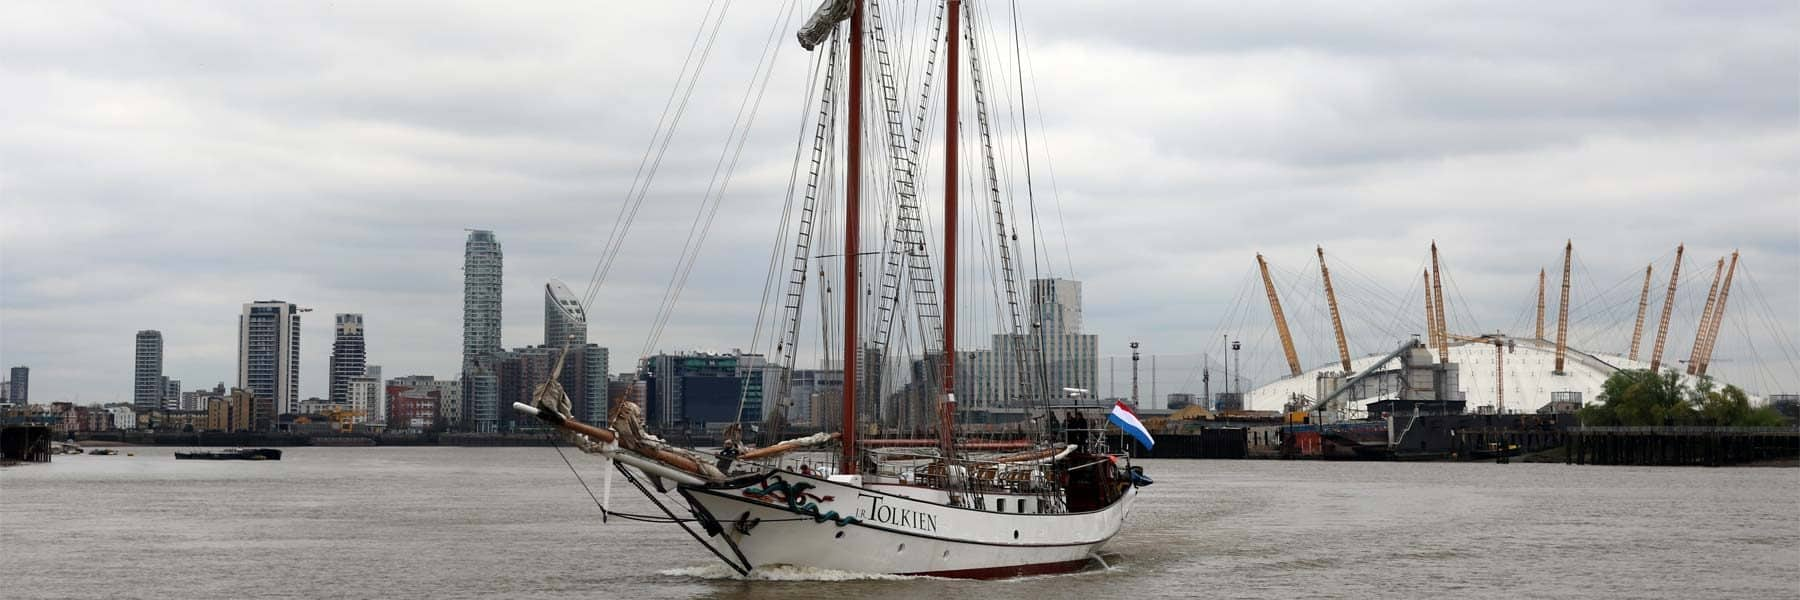 Tall Ship J. R. Tolkien approaching the Royal Borough of Greenwich